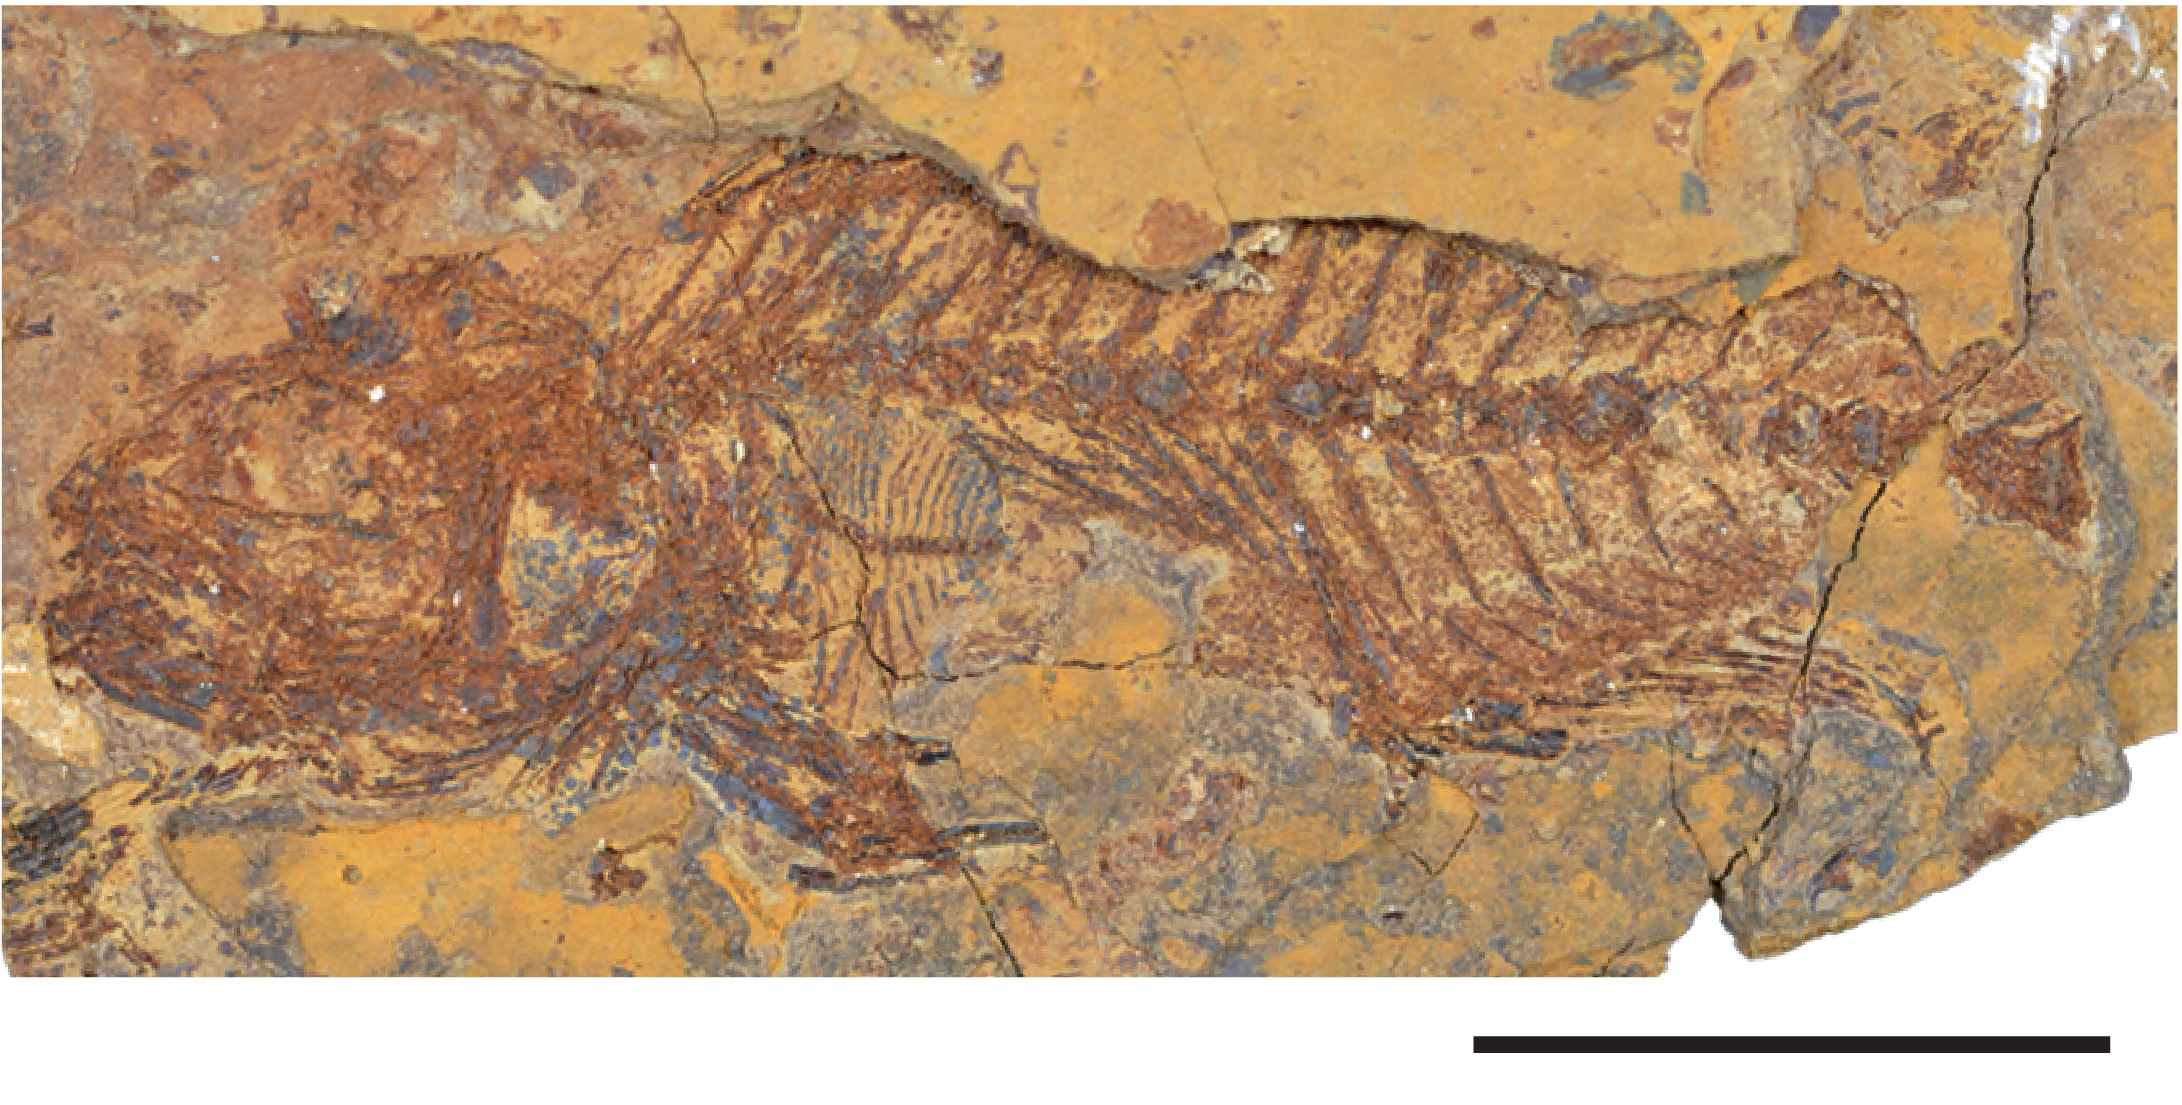 A fossilized fish skeleton